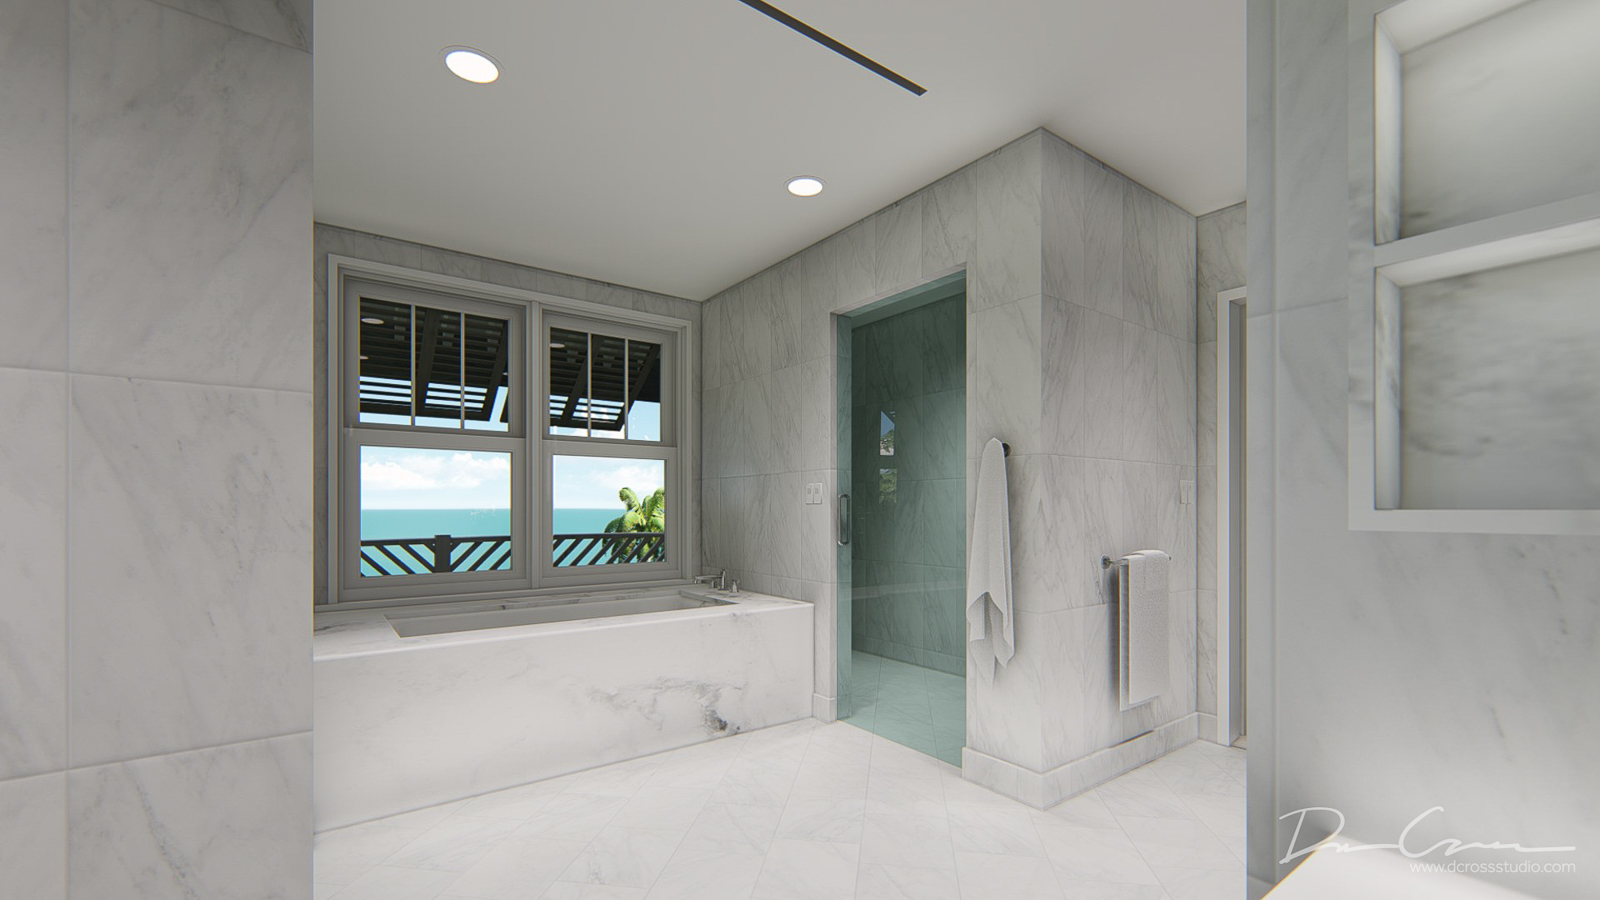 Master Bathroom - Tub View2.jpg